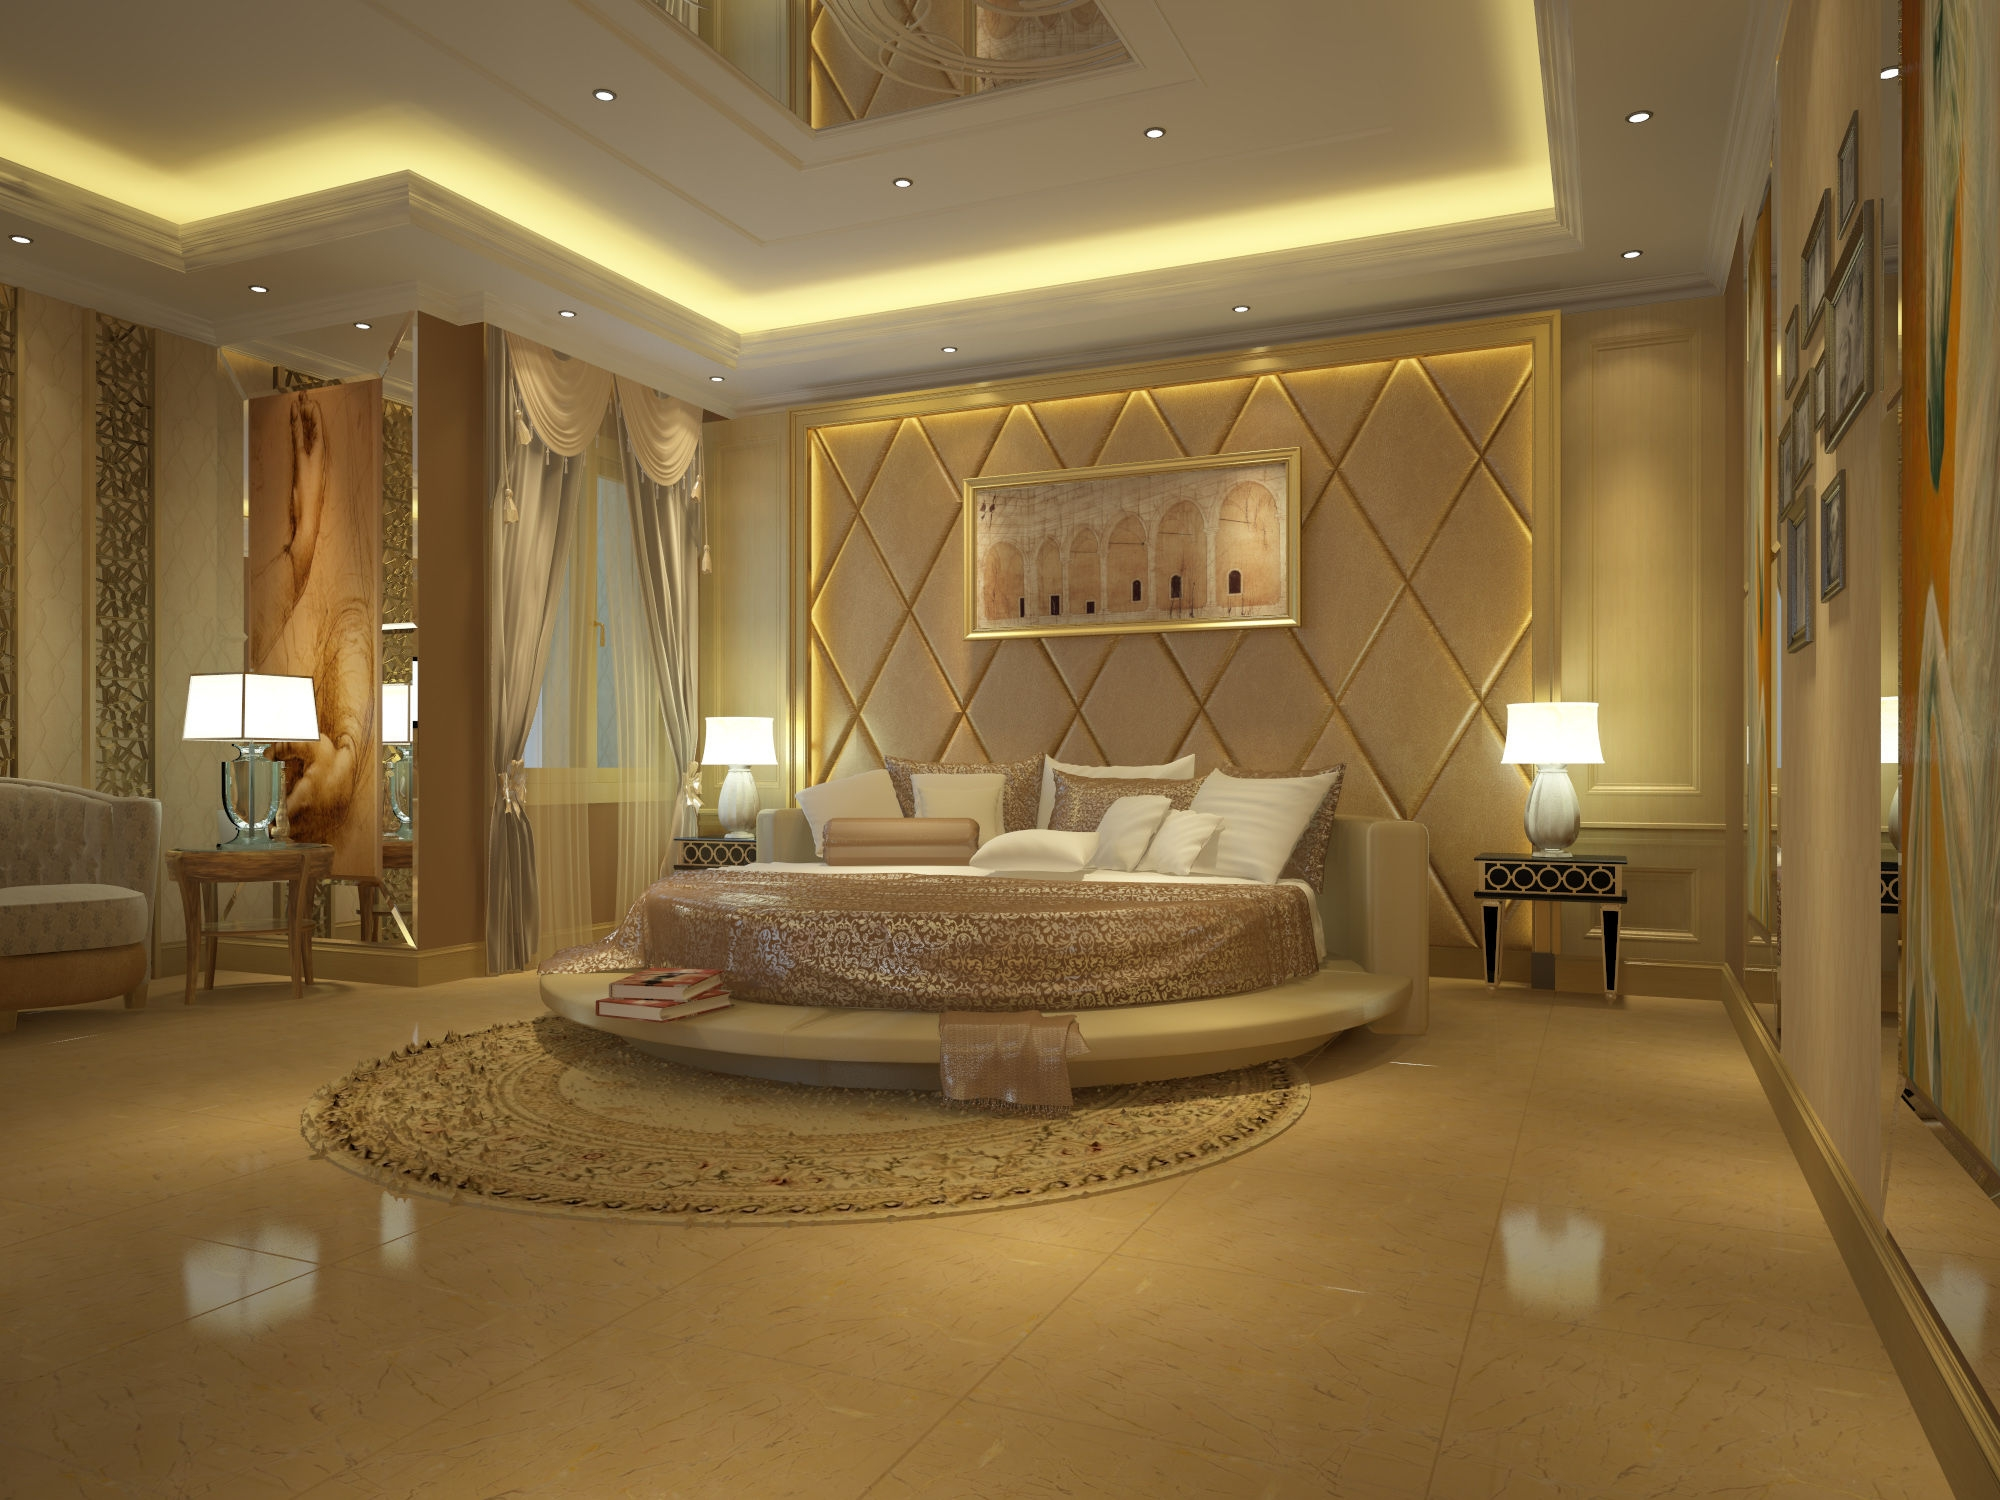 Impressive Hom Furniture Onalaska Wi With Master Bedroom Crafty Design Ideas Big Large Luxury Mansions Bedrooms Hom Furniture With Awesome And Big Houses And Bedrooms Home Decor Home Decorators Coupon Nicole Miller Decor Inexpensive And Offic